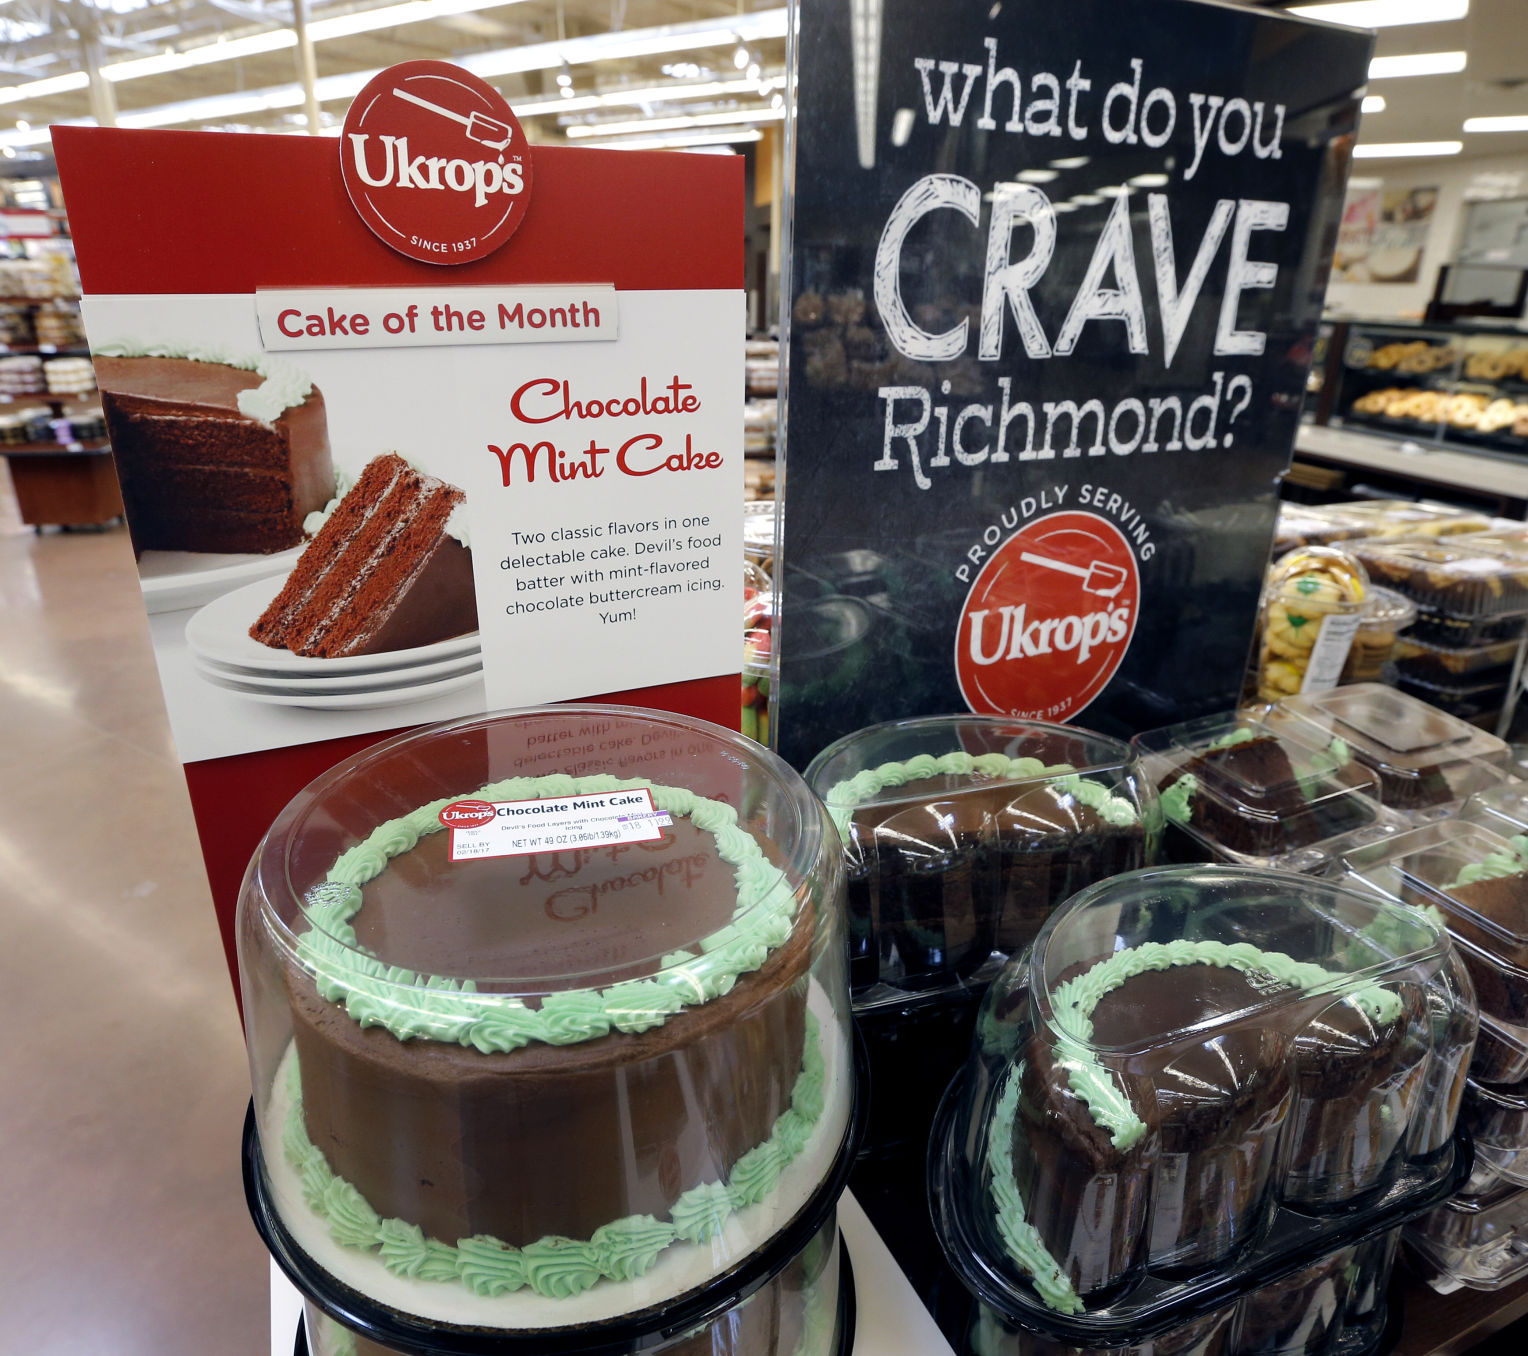 Ukrops bakery and prepared foods now in all Richmondarea Kroger